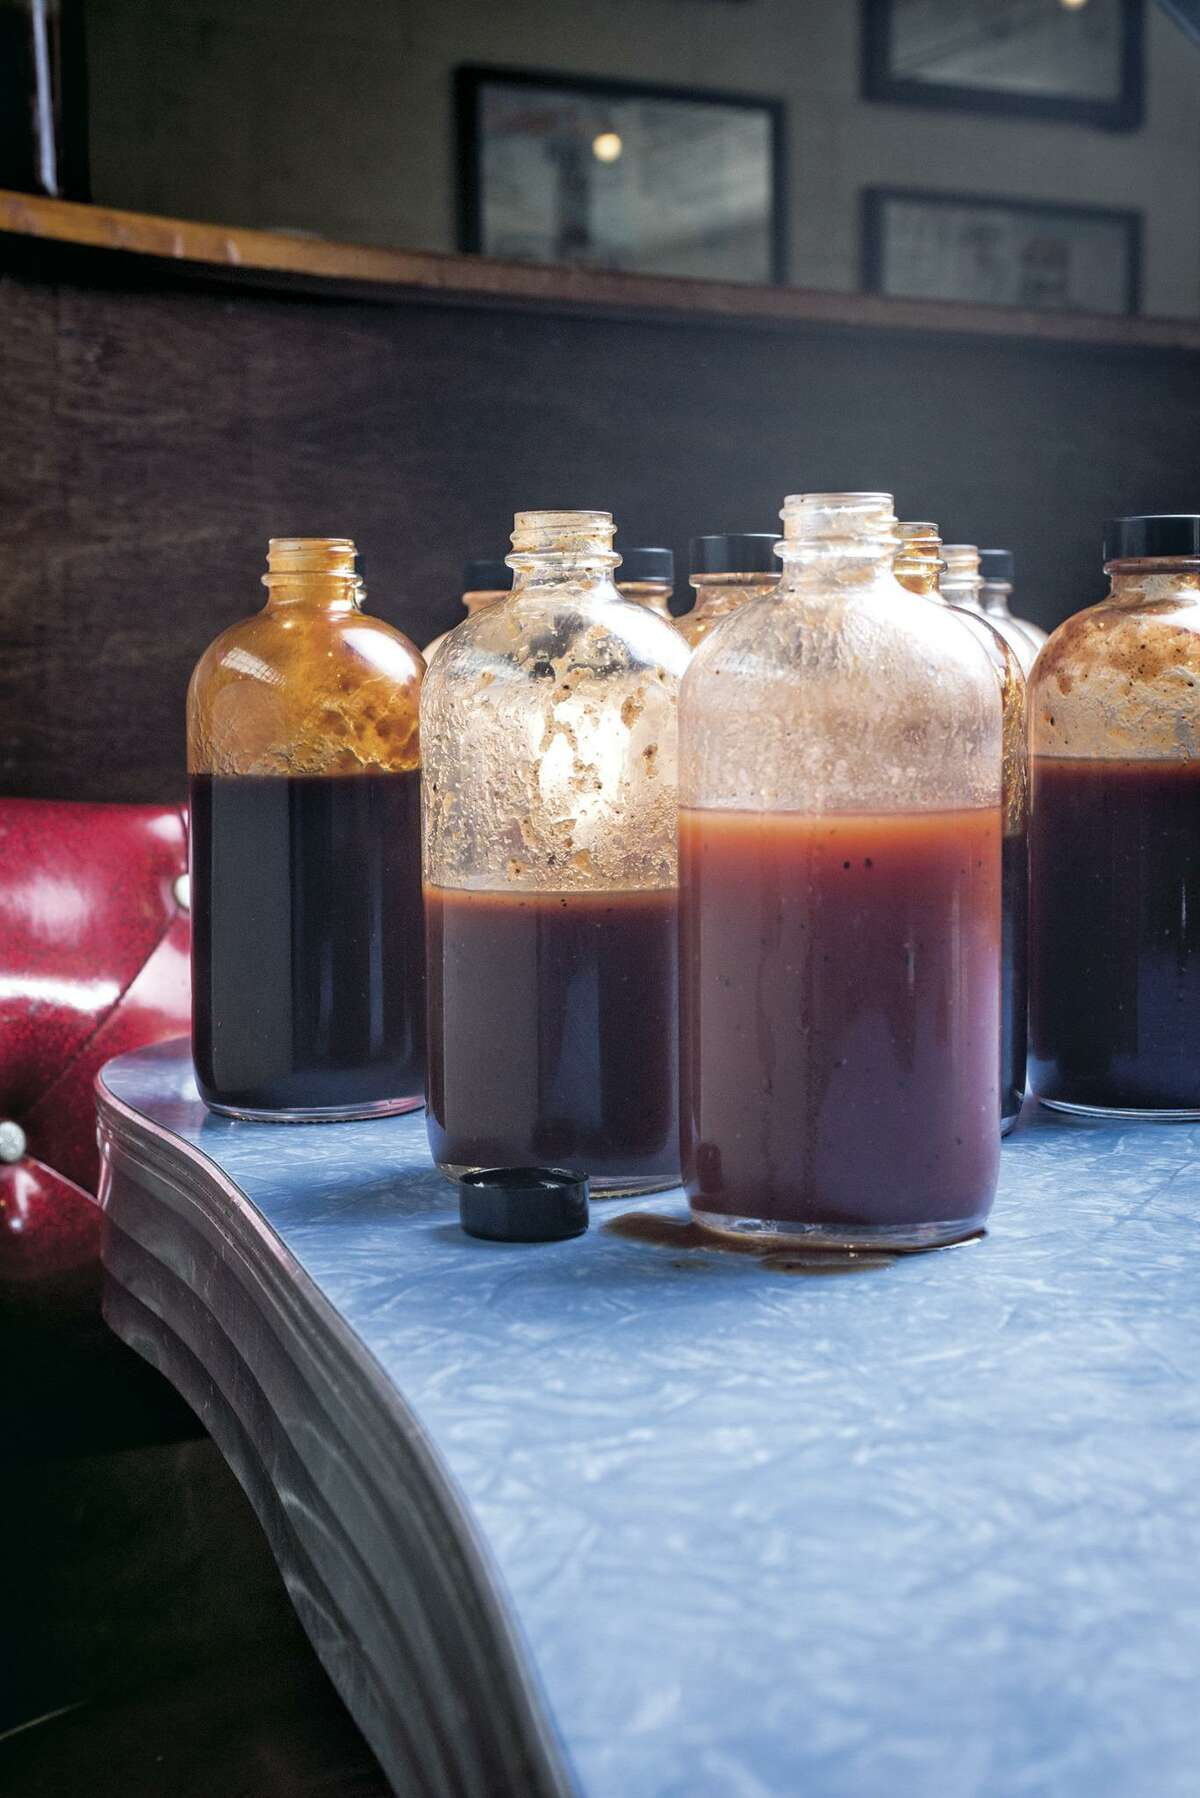 Barbecue sauces at Franklin Barbecue, Austin. From